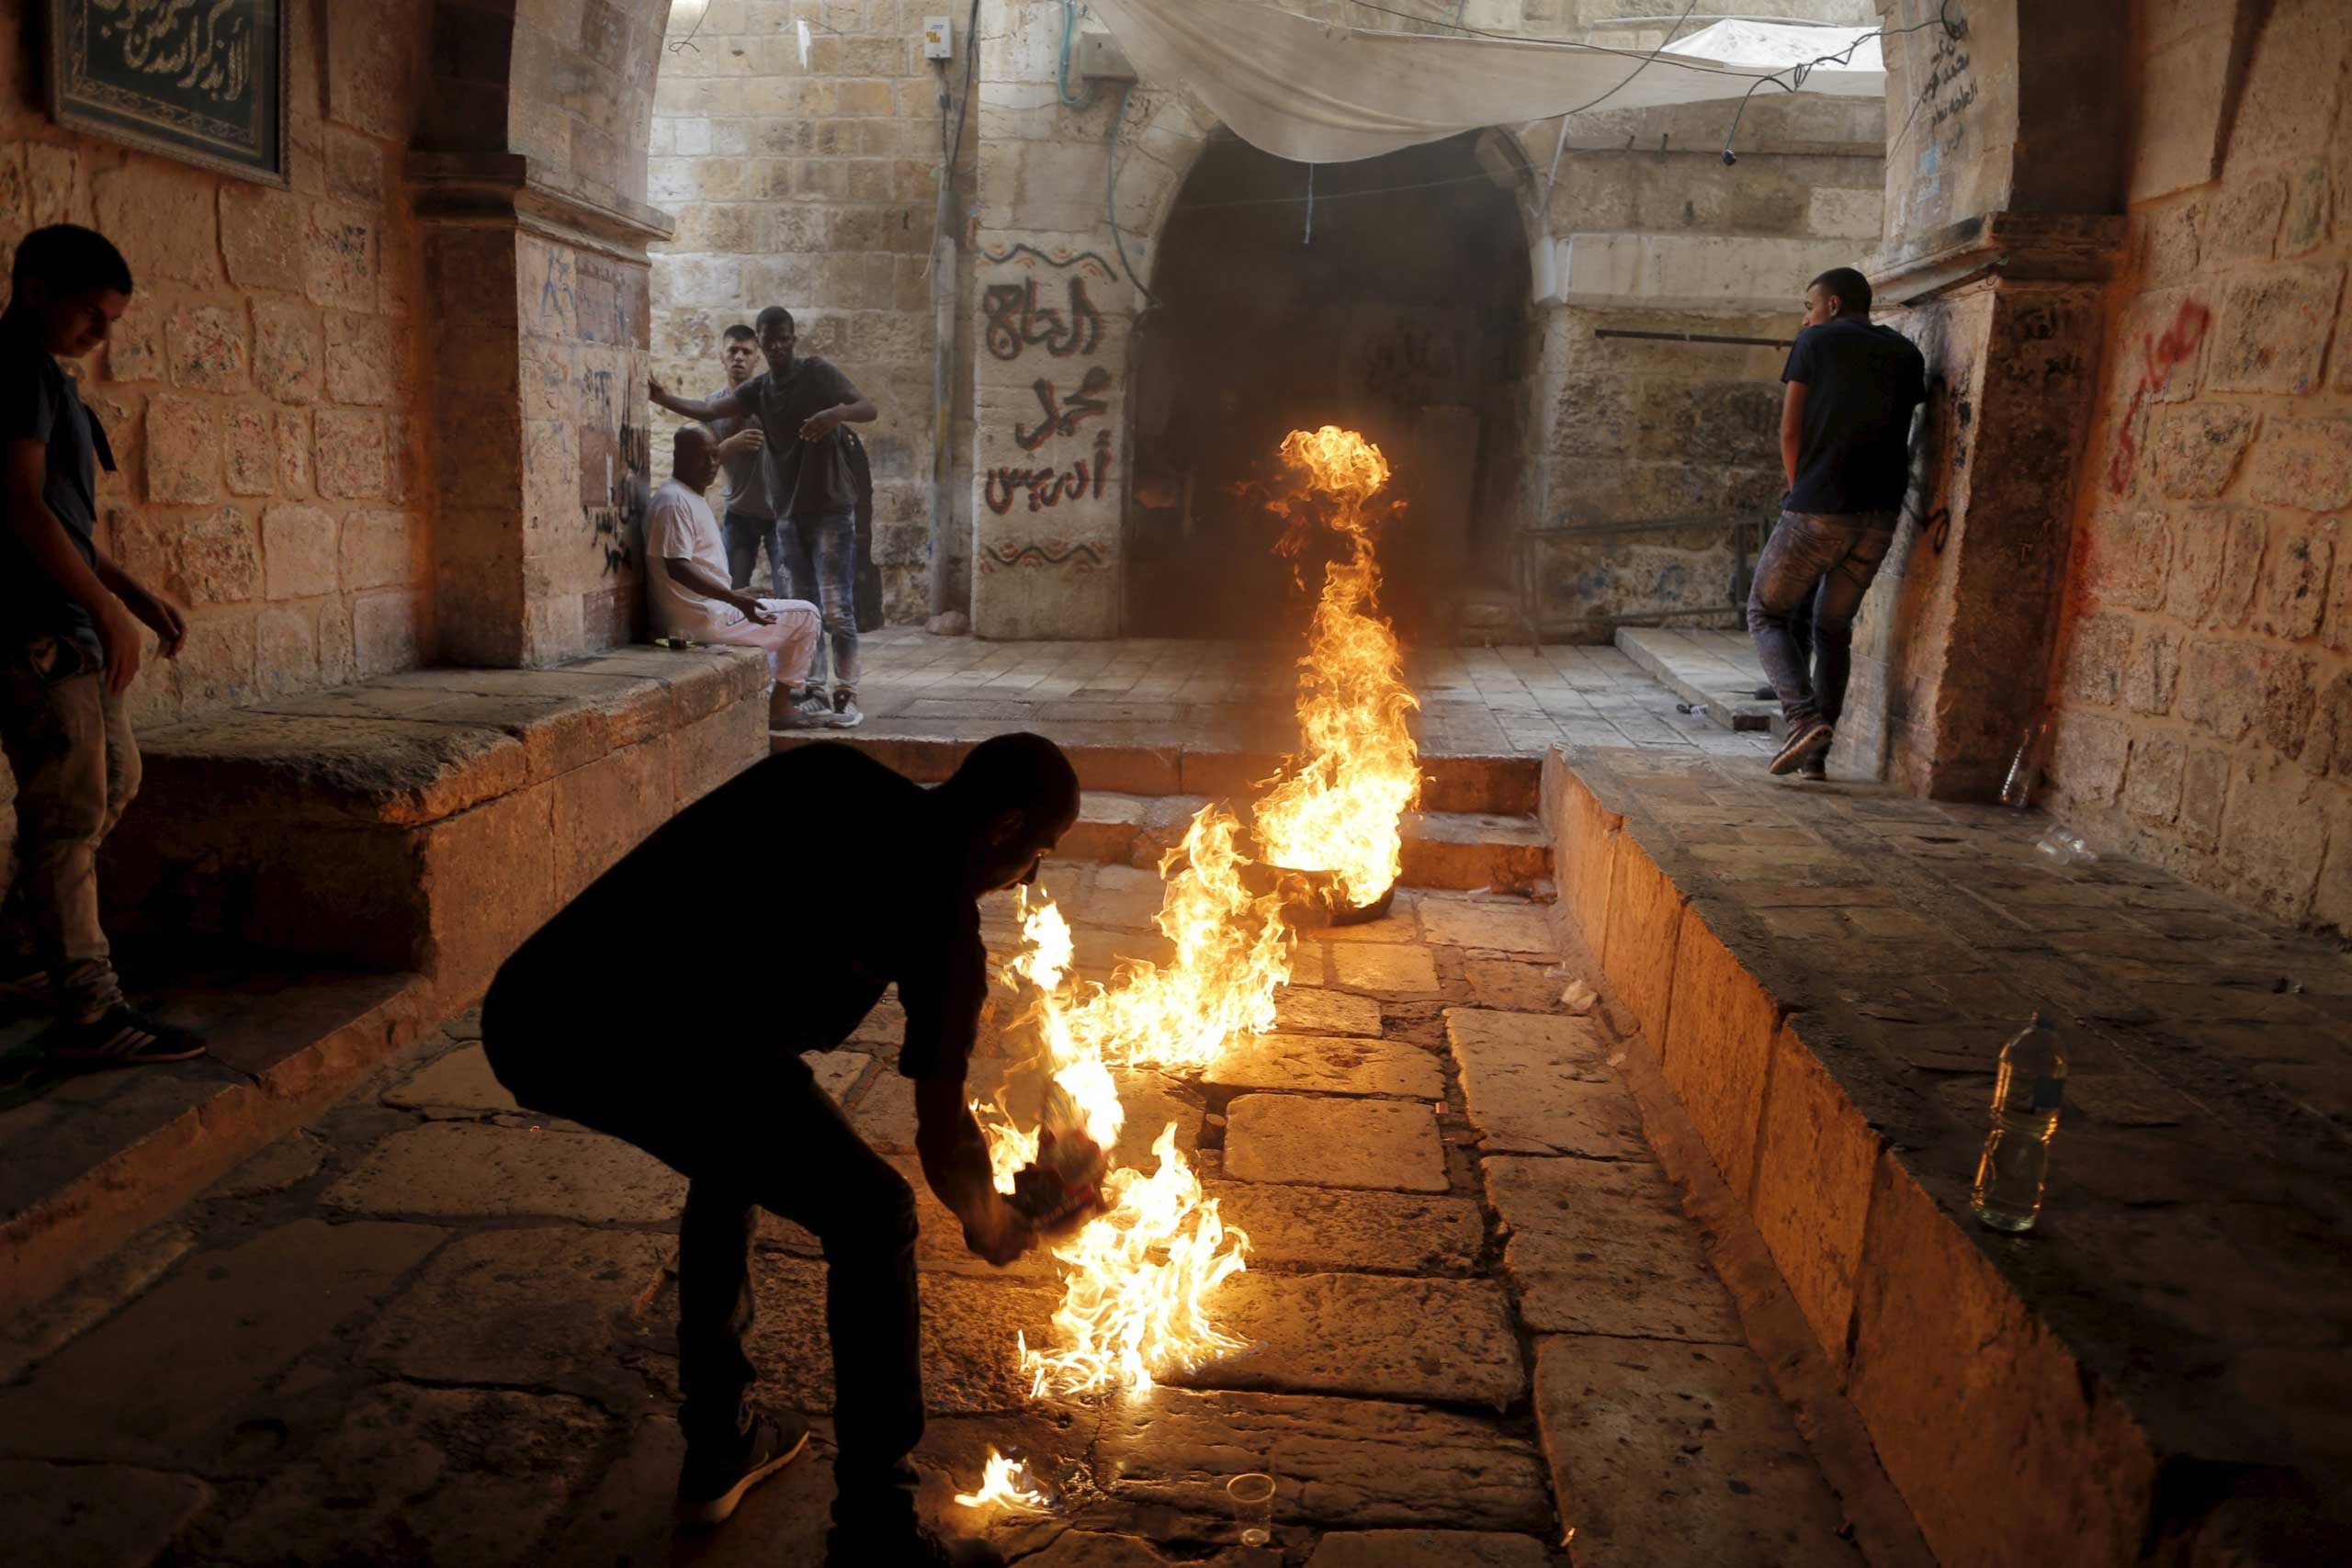 A Palestinian protester kicks a burning tyre during clashes between Palestinians and Israeli police officers in Jerusalem's Old City, on Sept. 15, 2015.